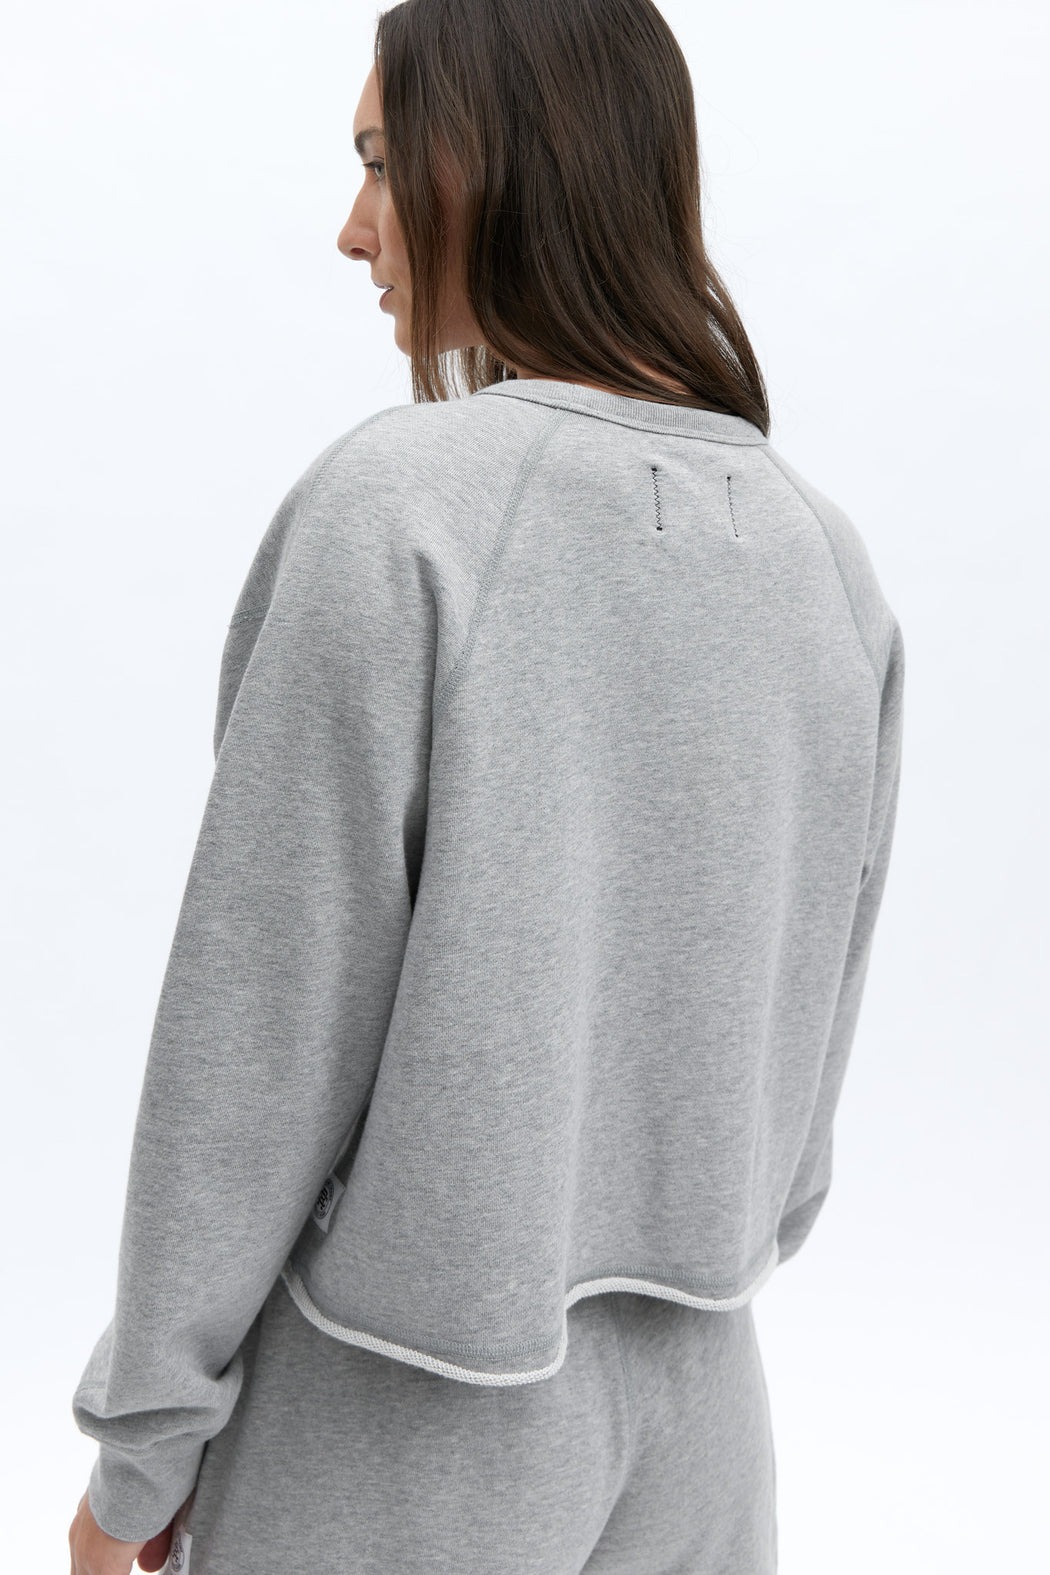 Reigning Champ Cut-Off Crewneck in Heather Grey